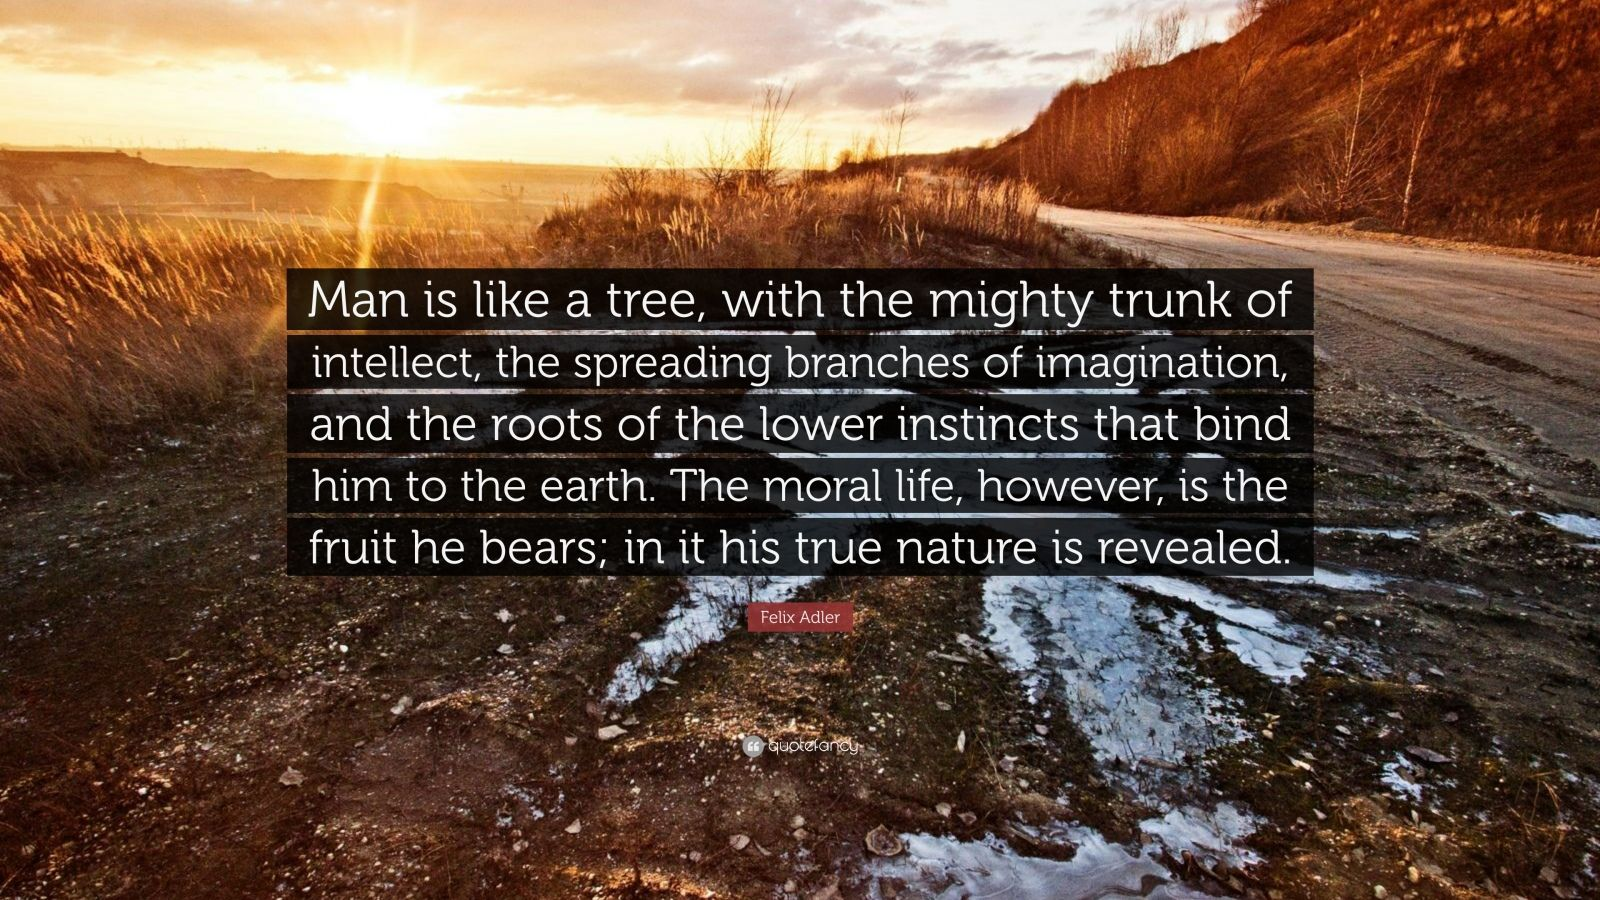 """Felix Adler Quote: """"Man is like a tree, with the mighty trunk of intellect, the spreading branches of imagination, and the roots of the lower instincts that bind him to the earth. The moral life, however, is the fruit he bears; in it his true nature is revealed."""""""